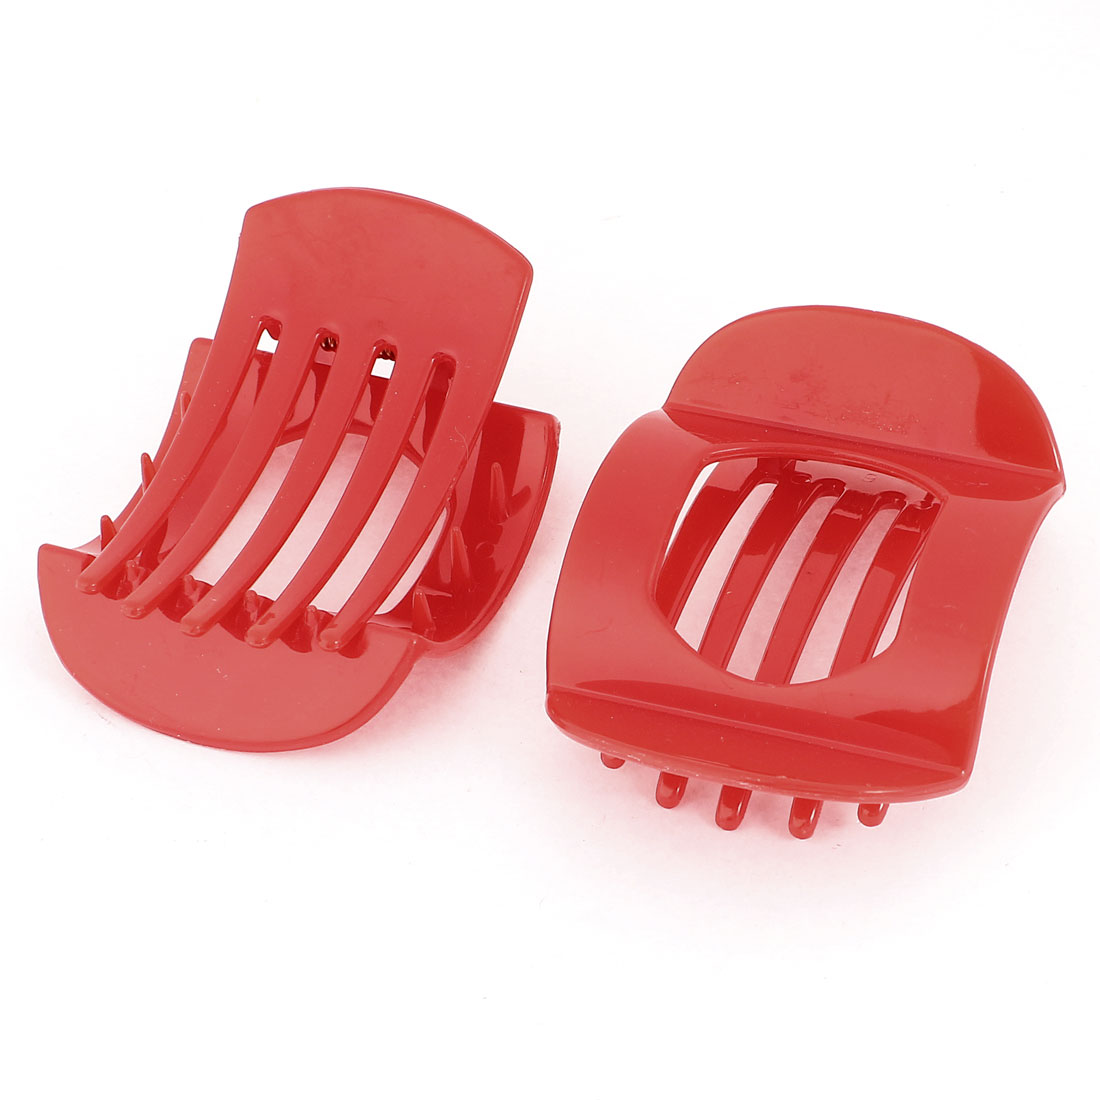 2Pcs Hairstyle 5 Teeth Cut Out Middle Spring Loaded Plastic Hair Clip Claw Red for Lady